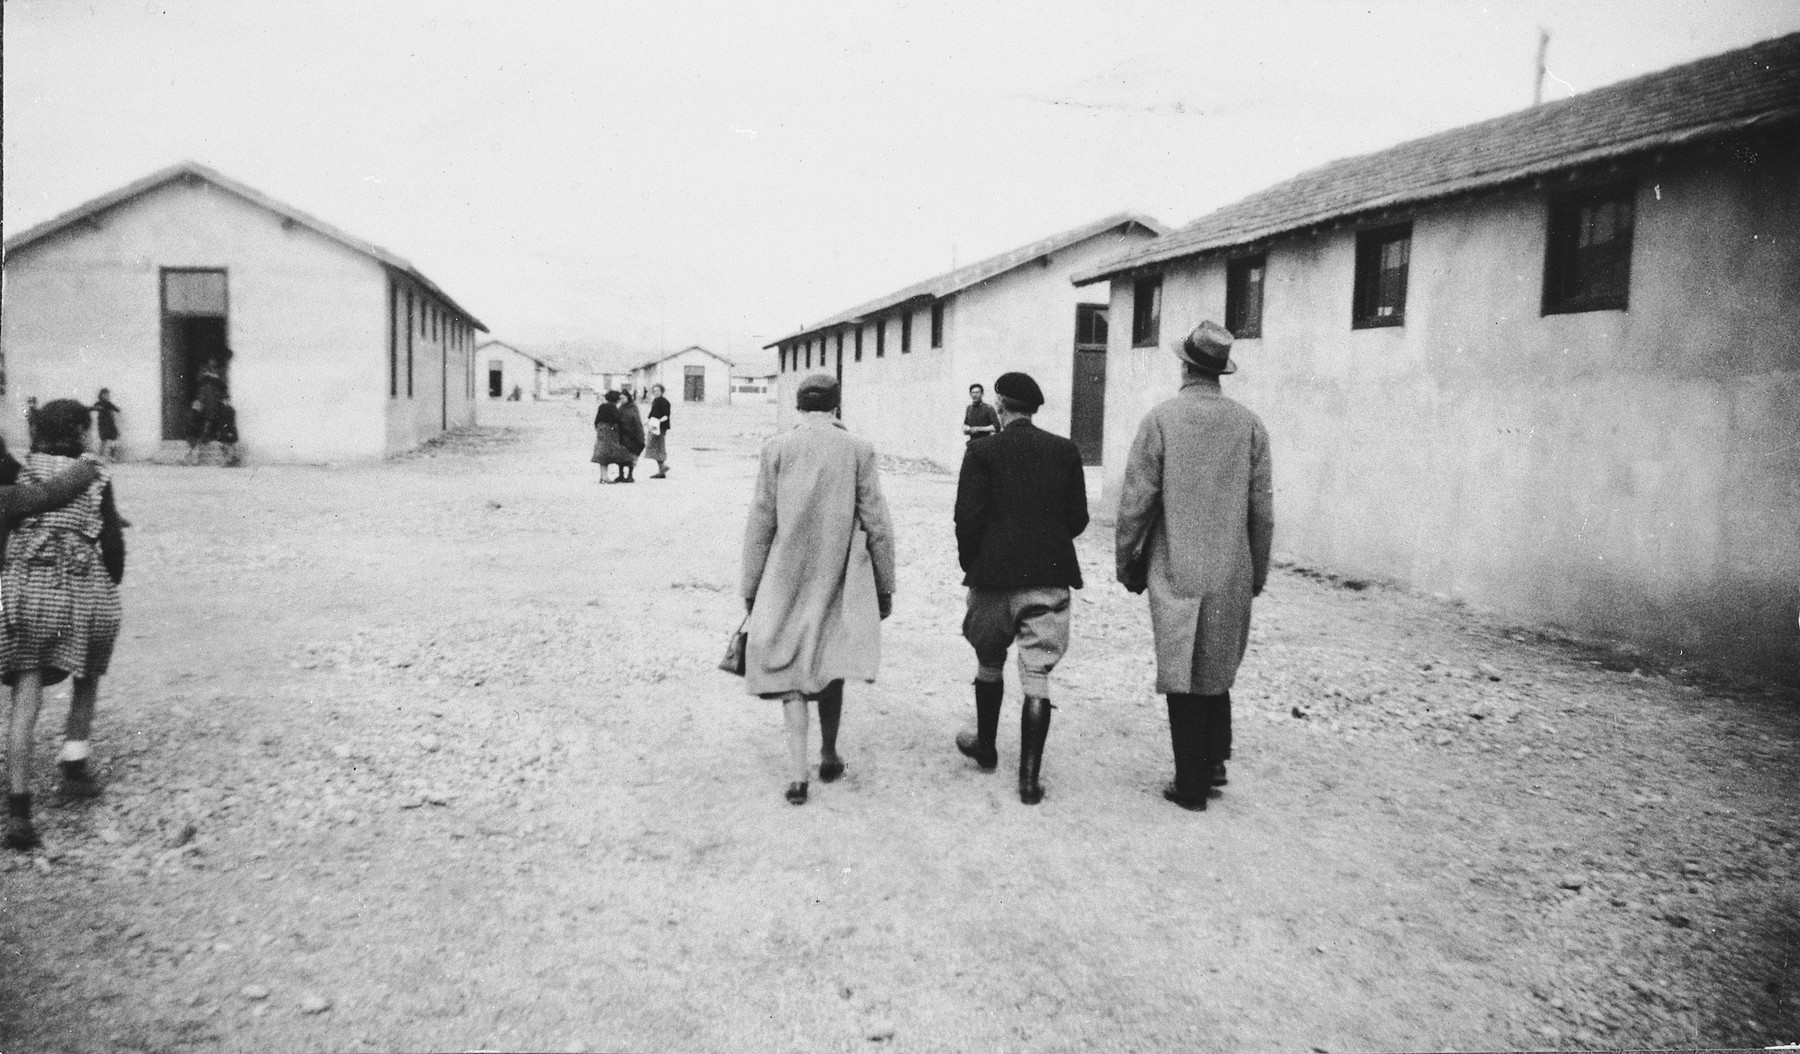 Three [visitors] walk along a street between rows of barracks in the Rivesaltes internment camp in France.